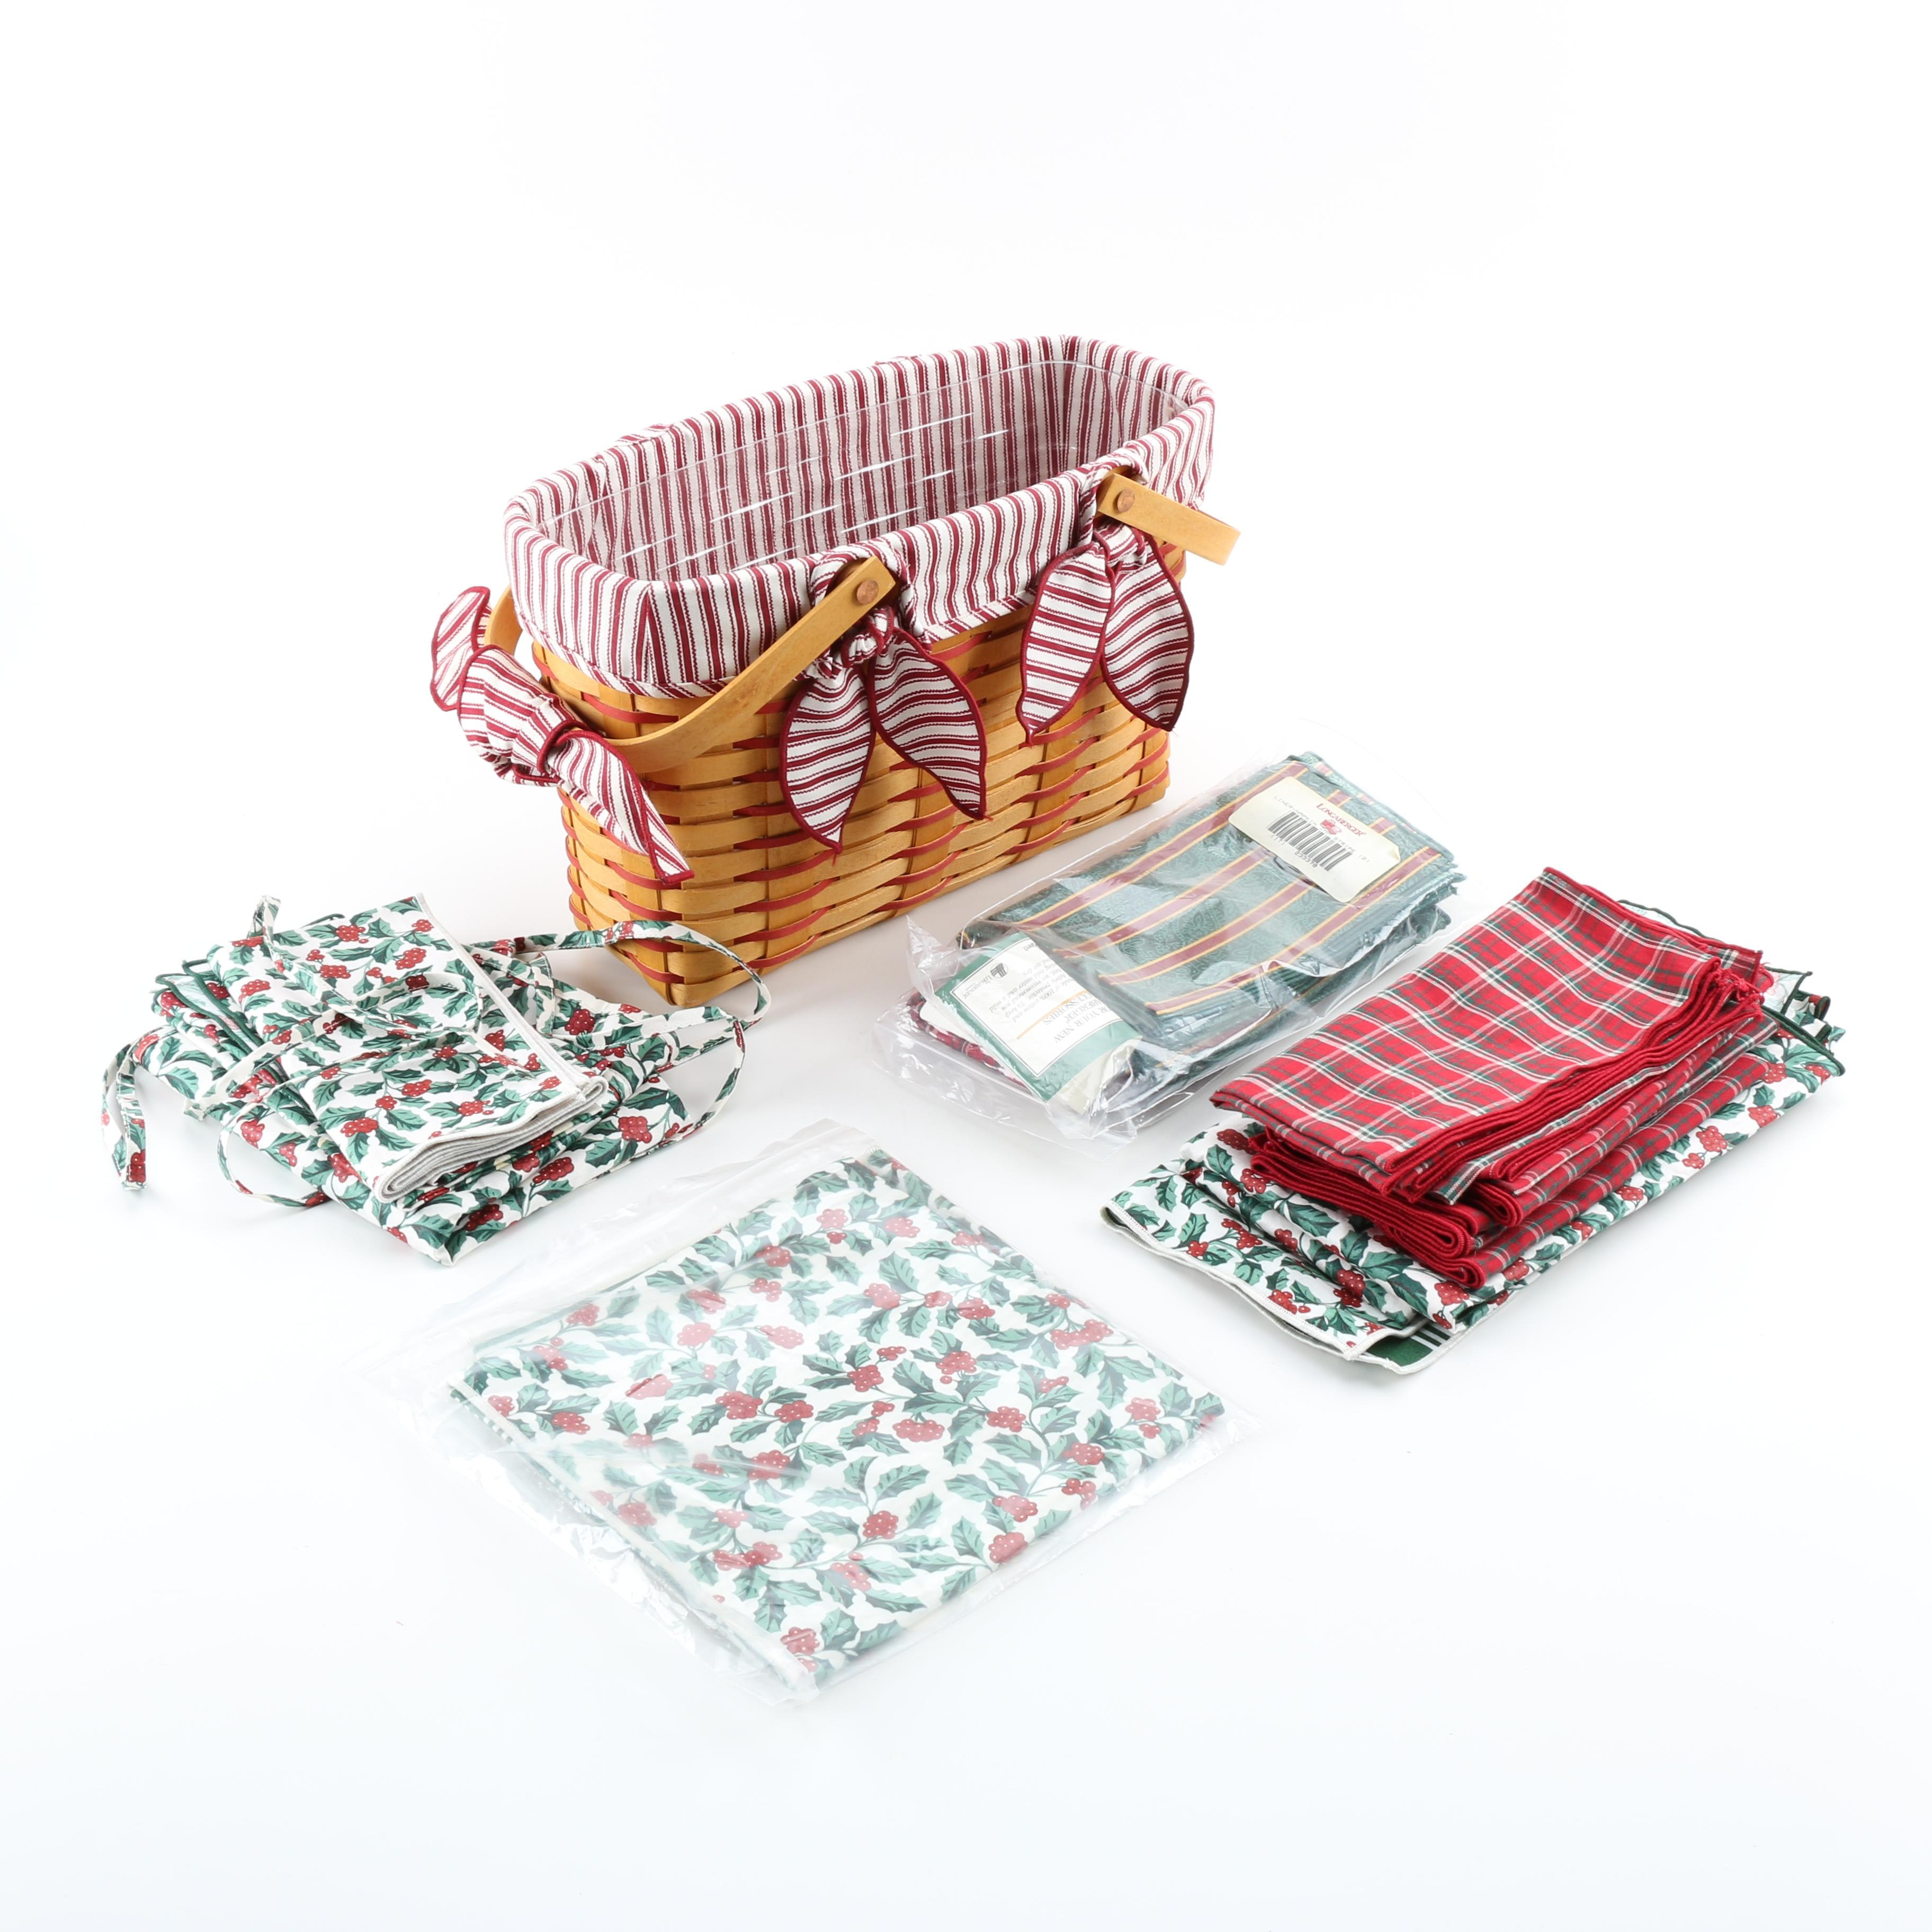 Longaberger Cherished Memories Sweetheart Basket and Table Linens